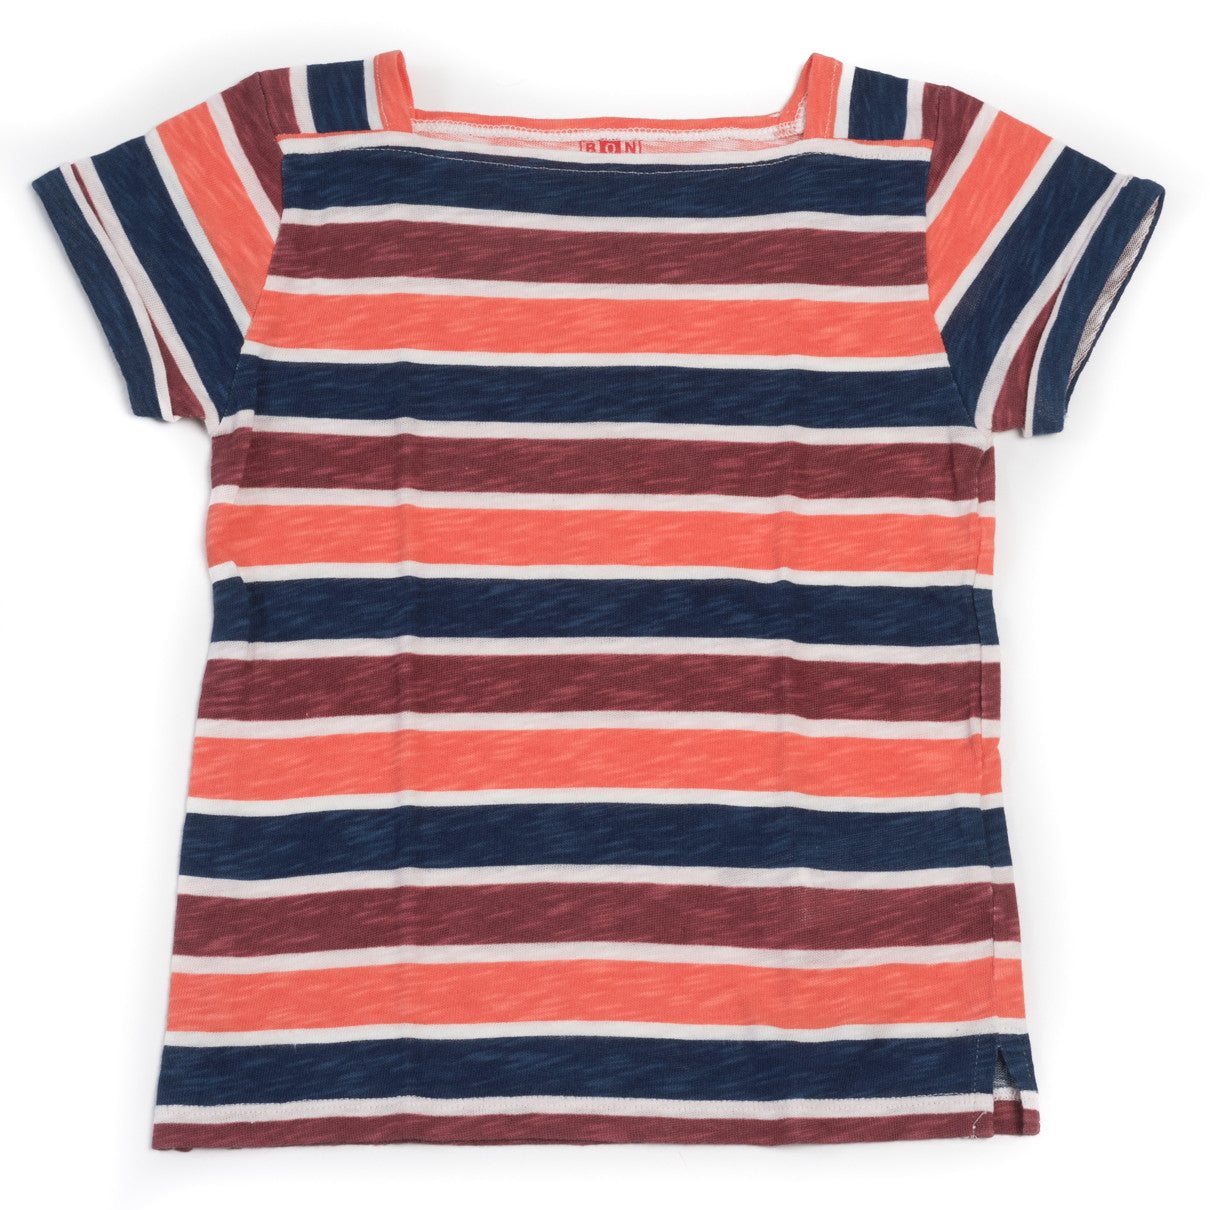 Bonton Brunette Striped Tee - Ladida